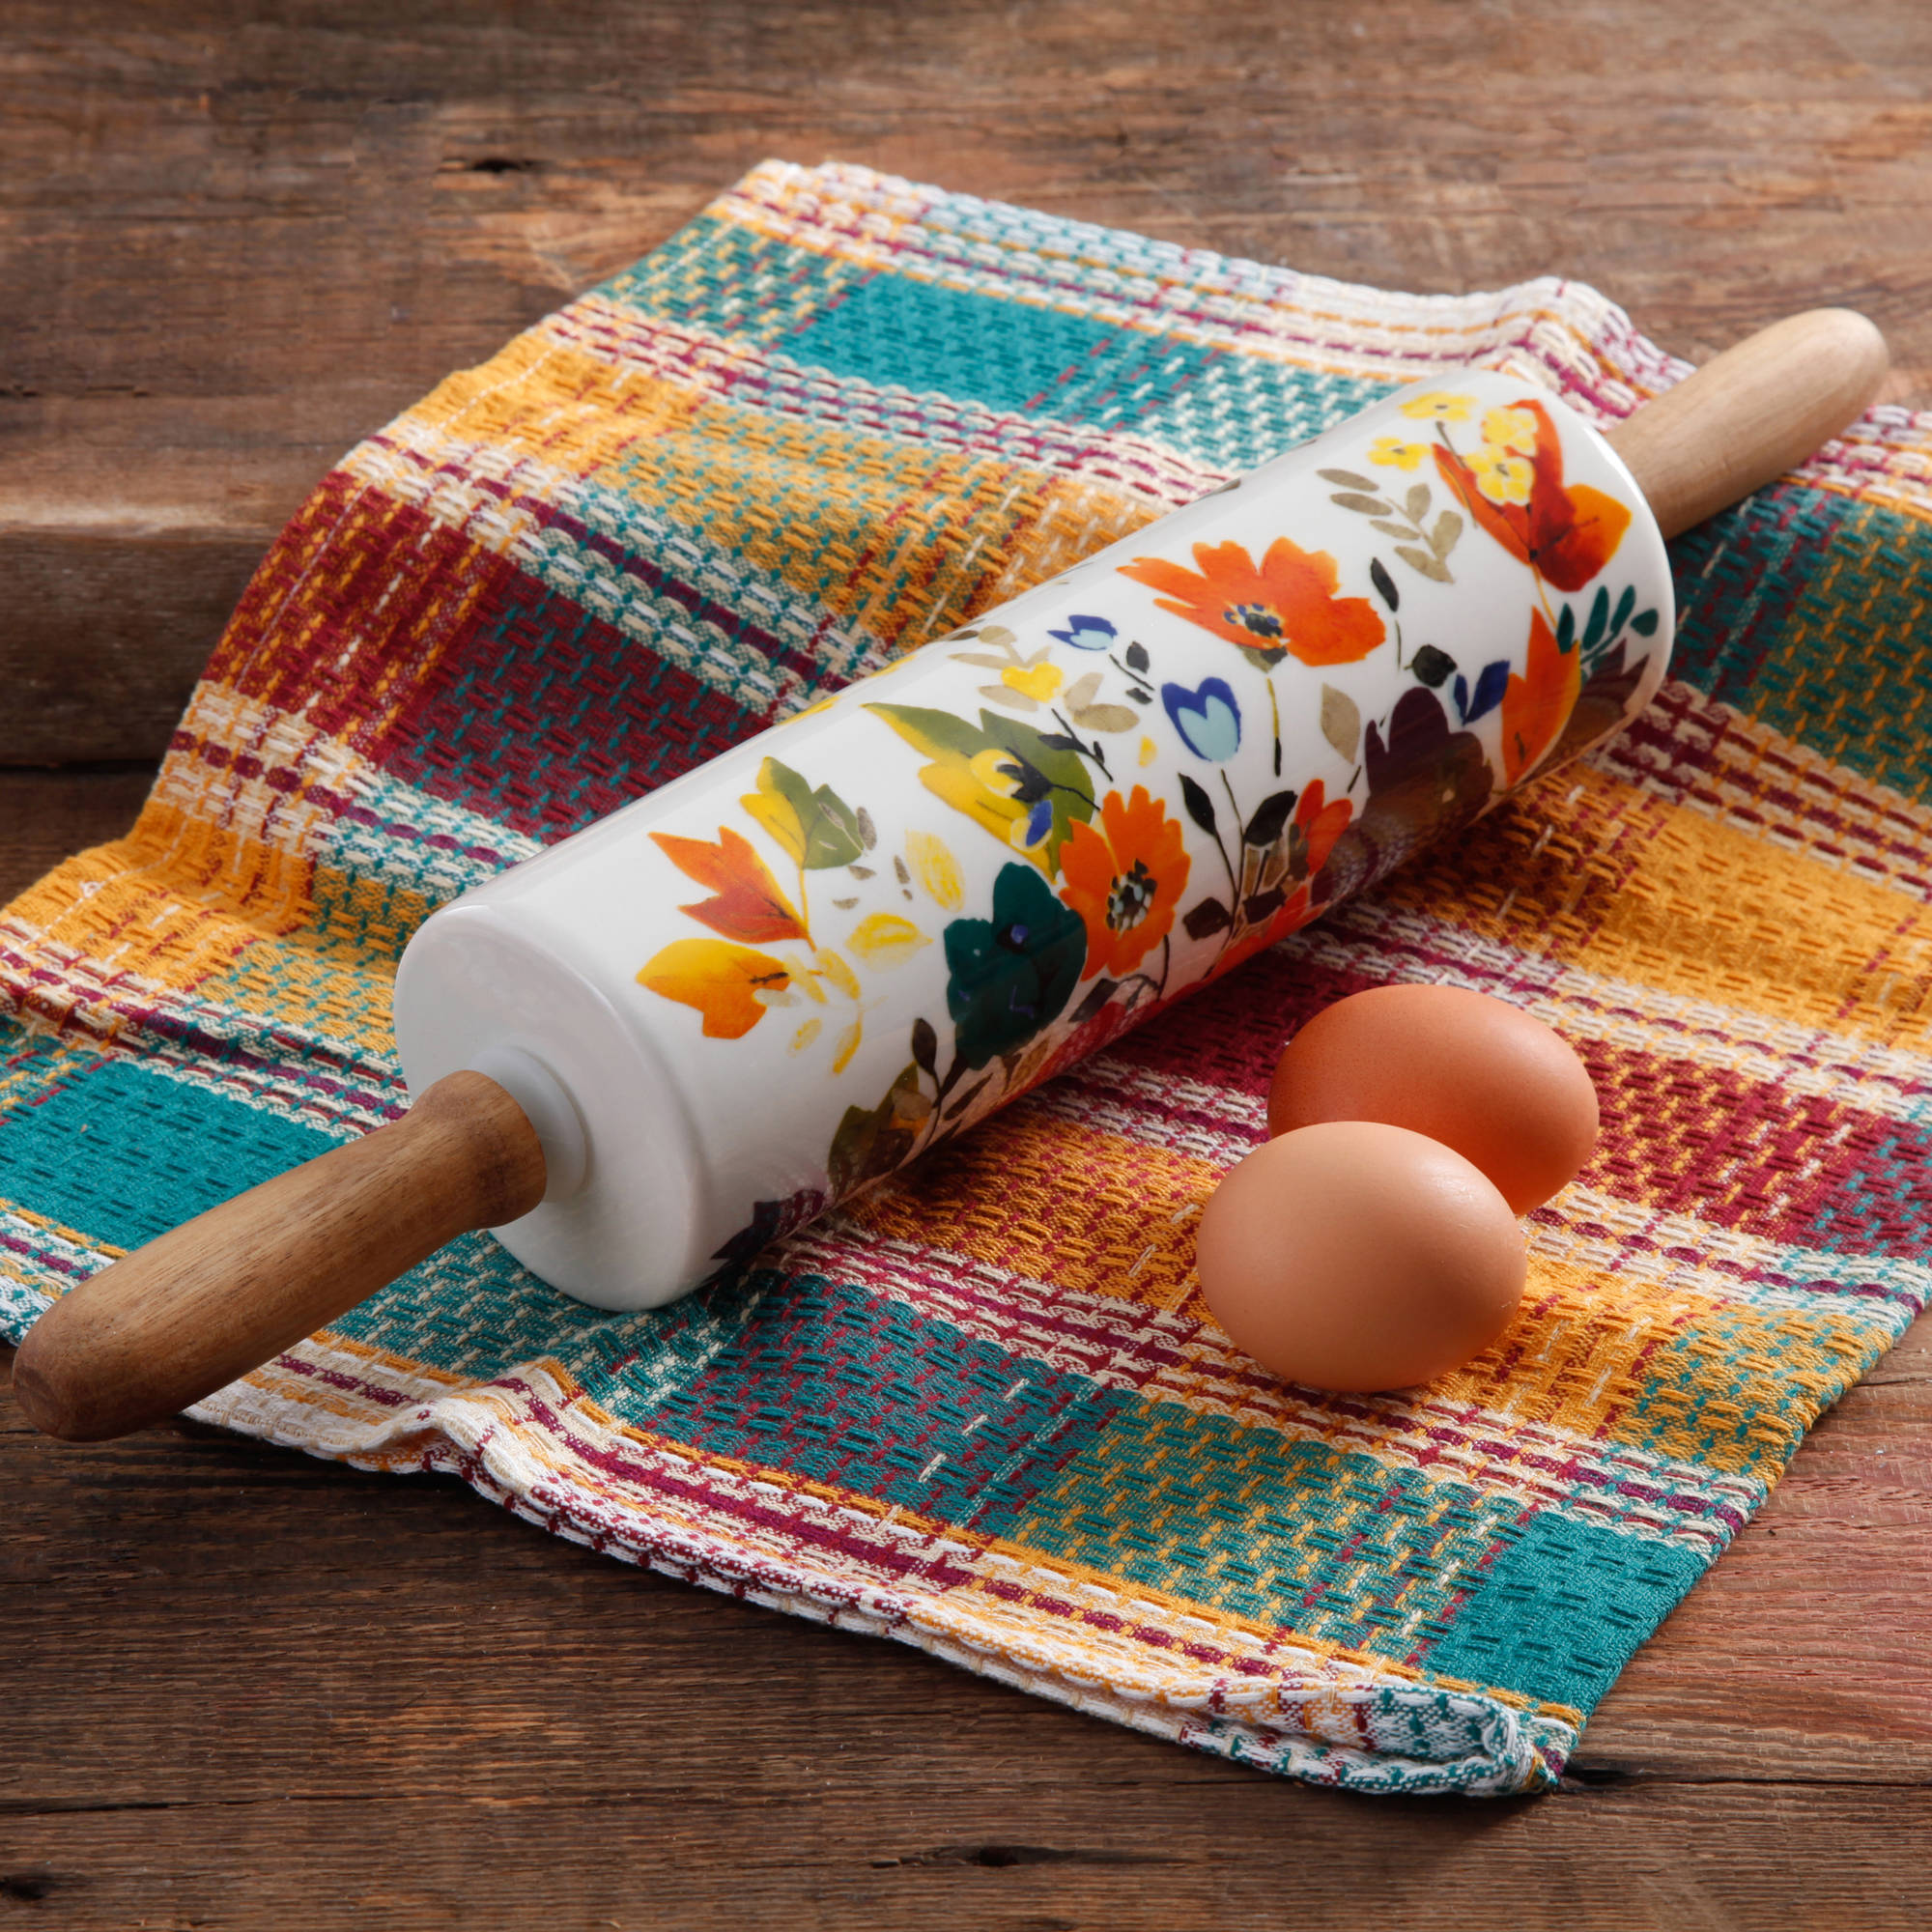 The Pioneer Woman Floral Rolling Pin Pastry Bake Fondant Ceramic Baking Roller